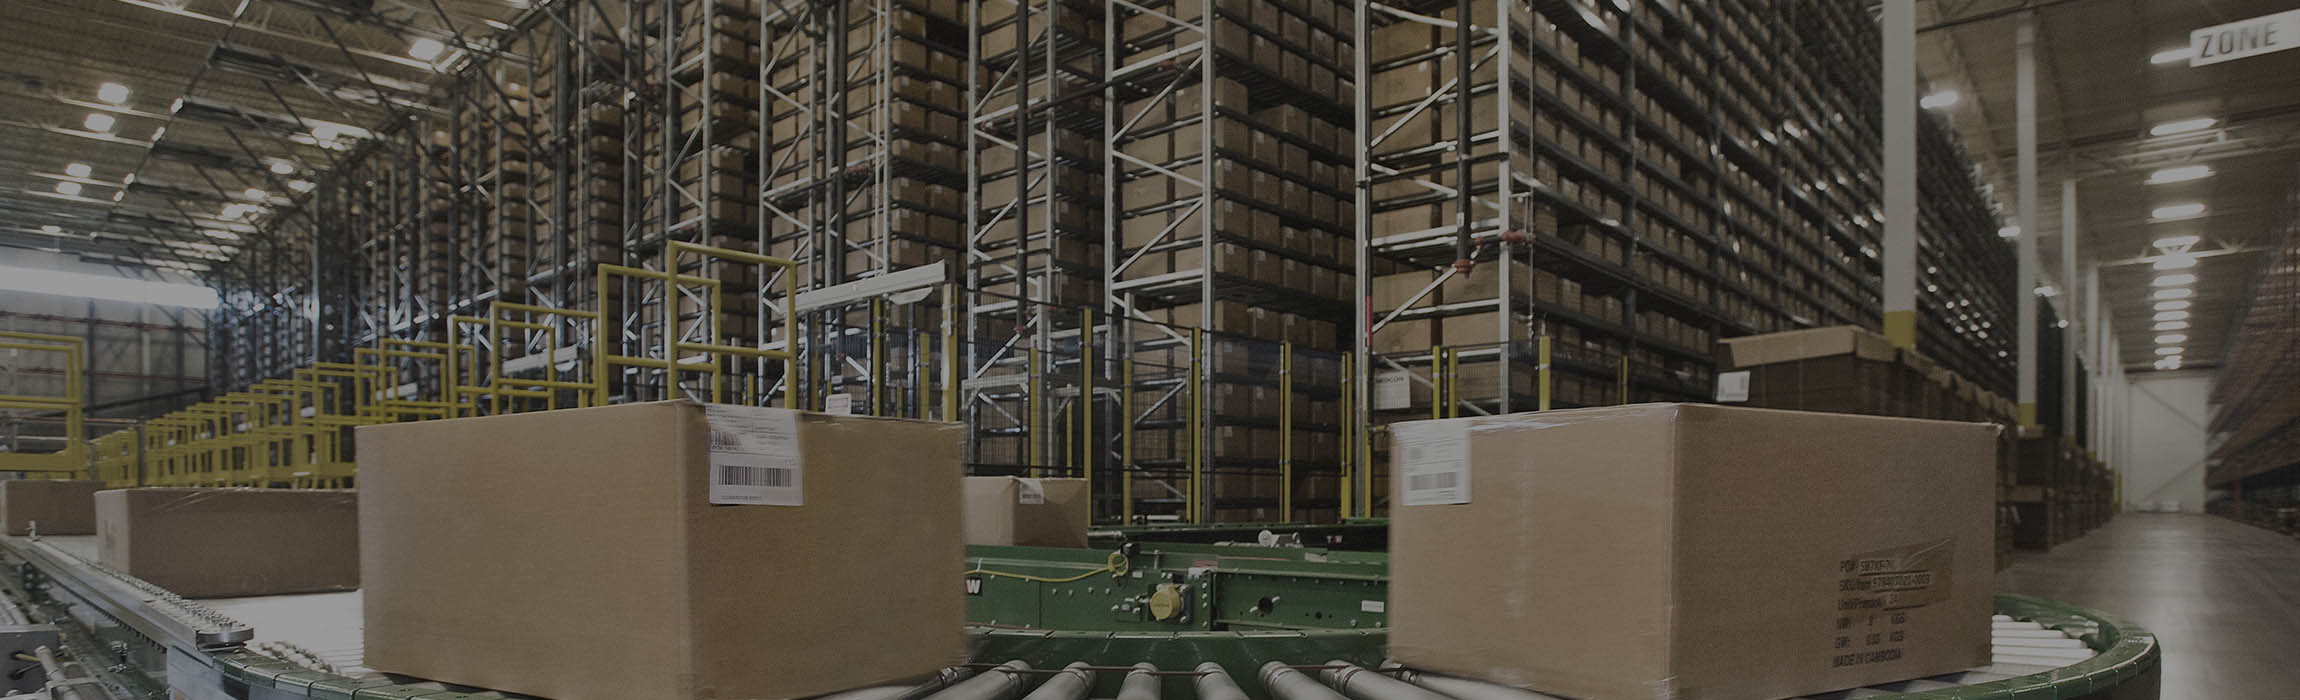 Automatic goods receipt - receiving and storage of cartons.